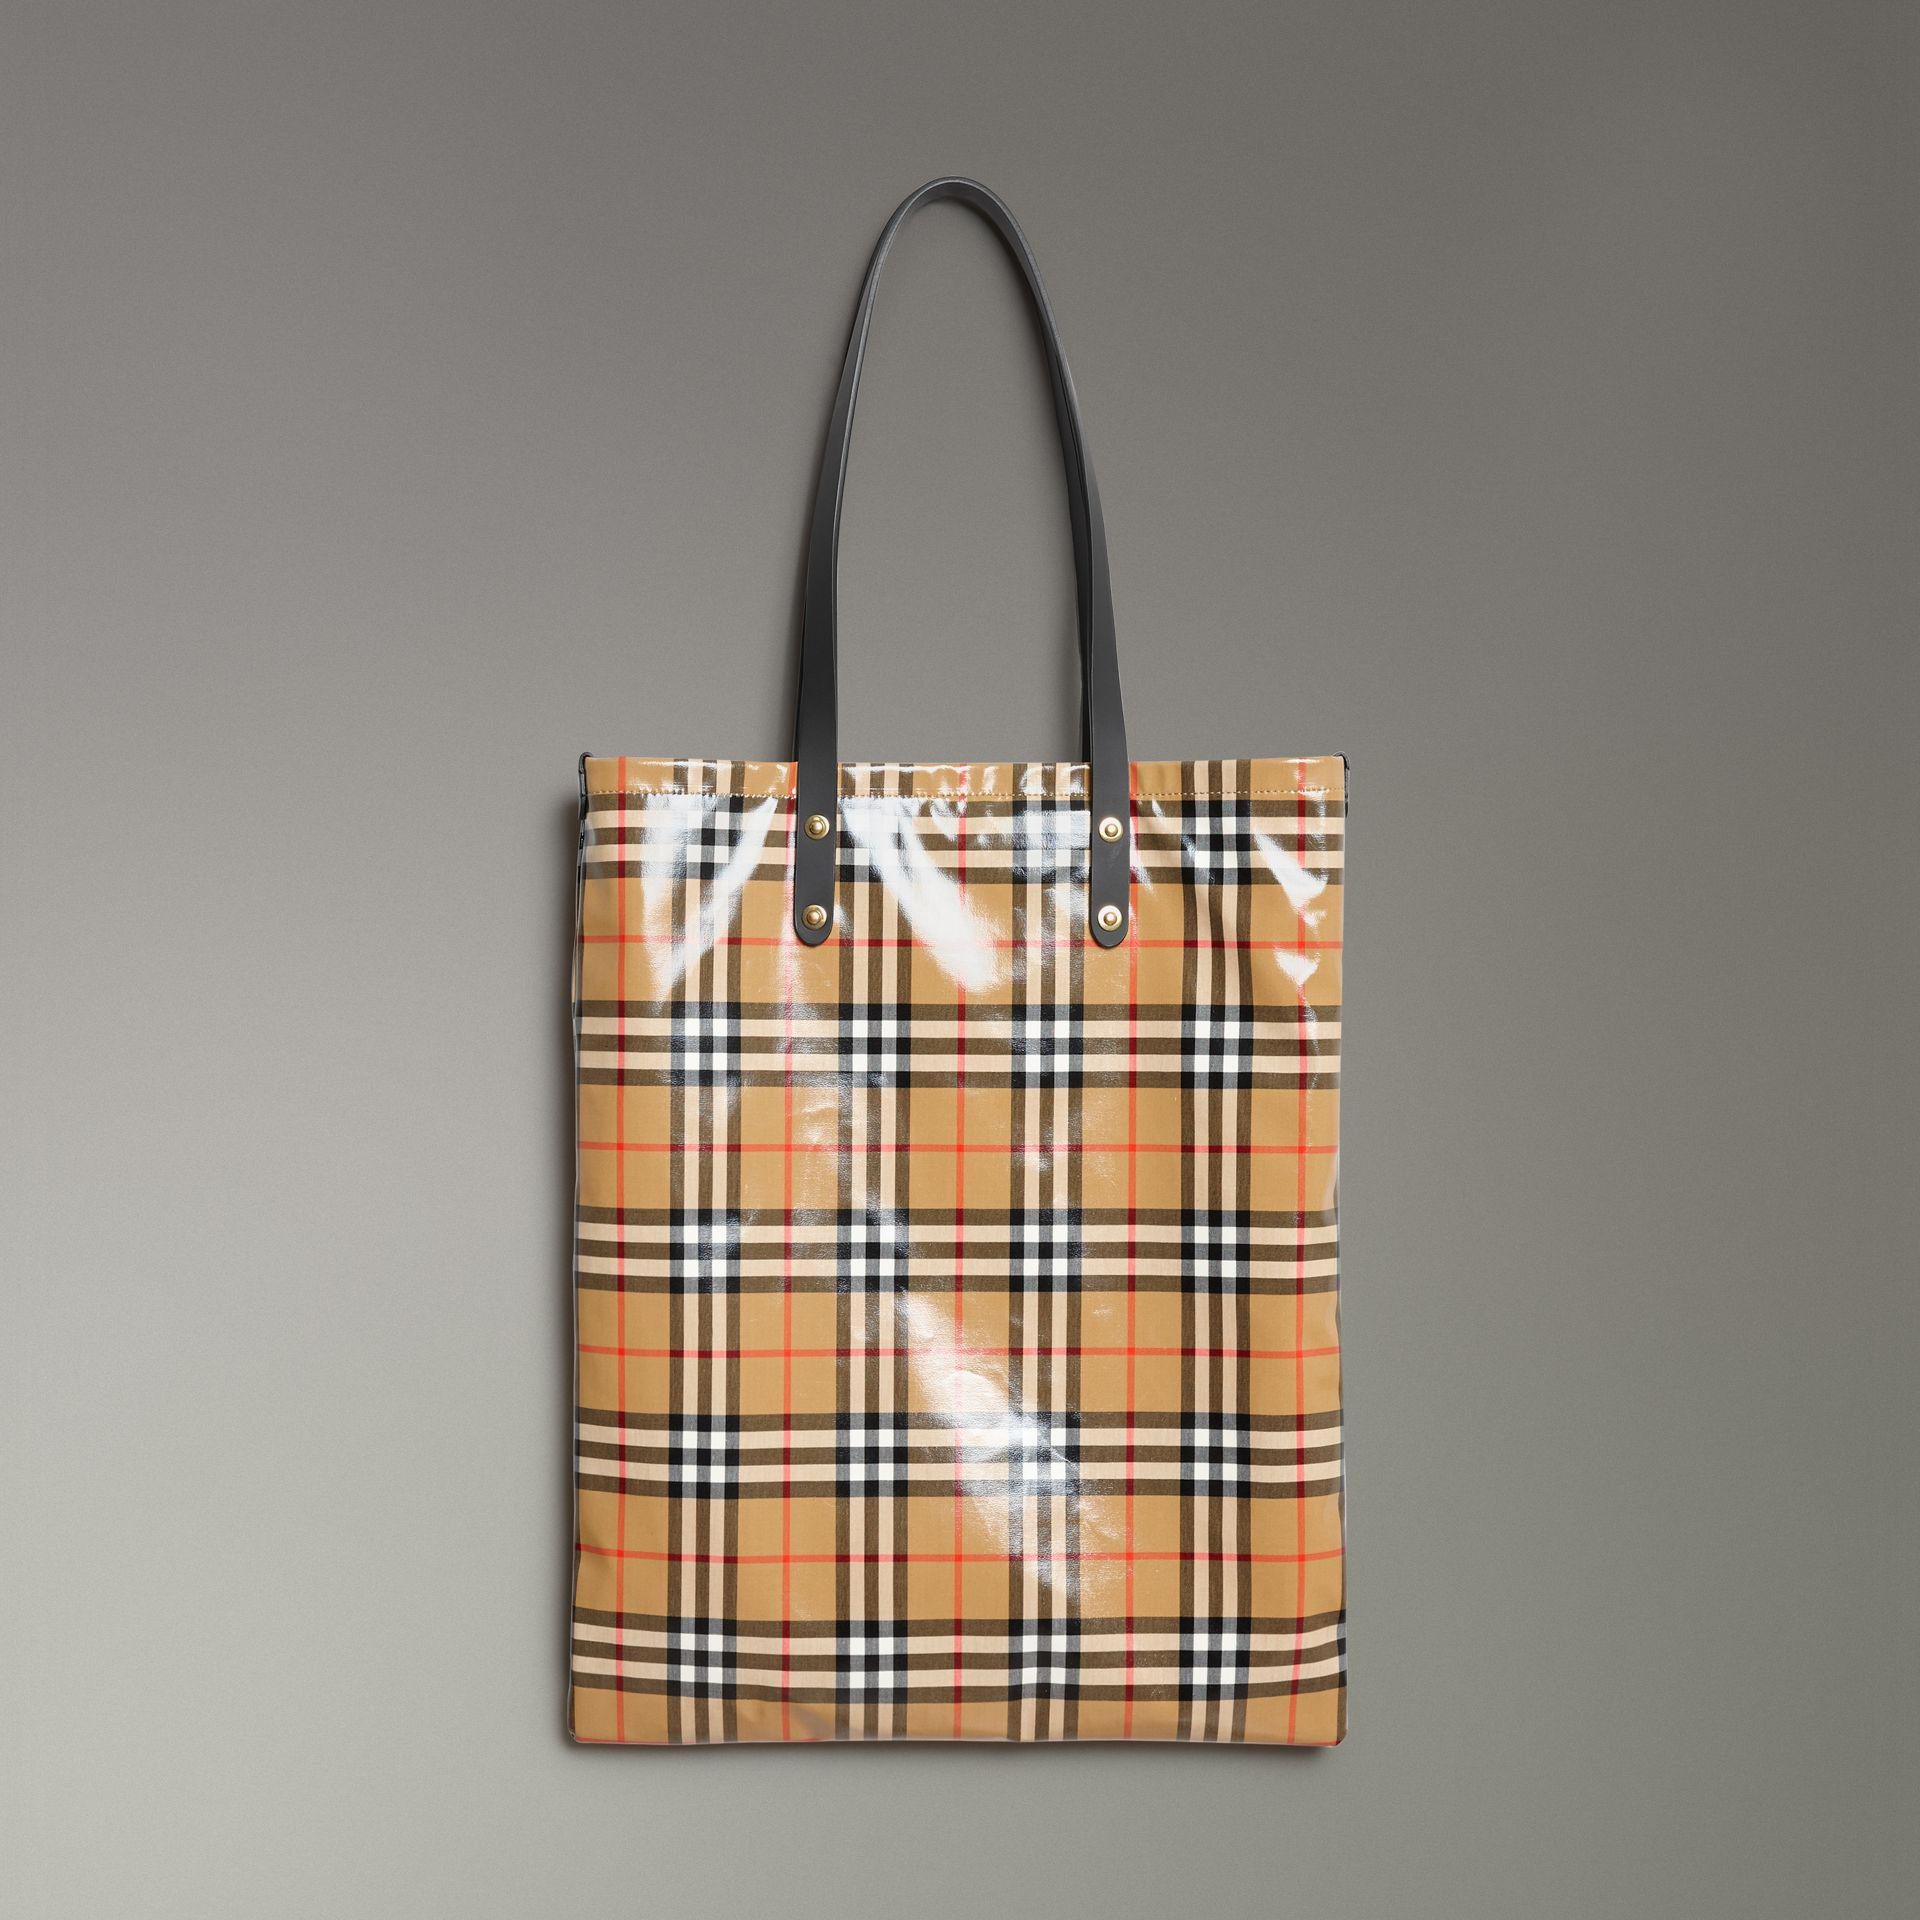 e9ad09c9a886 Lyst - Burberry Large Coated Vintage Check Shopper in Black